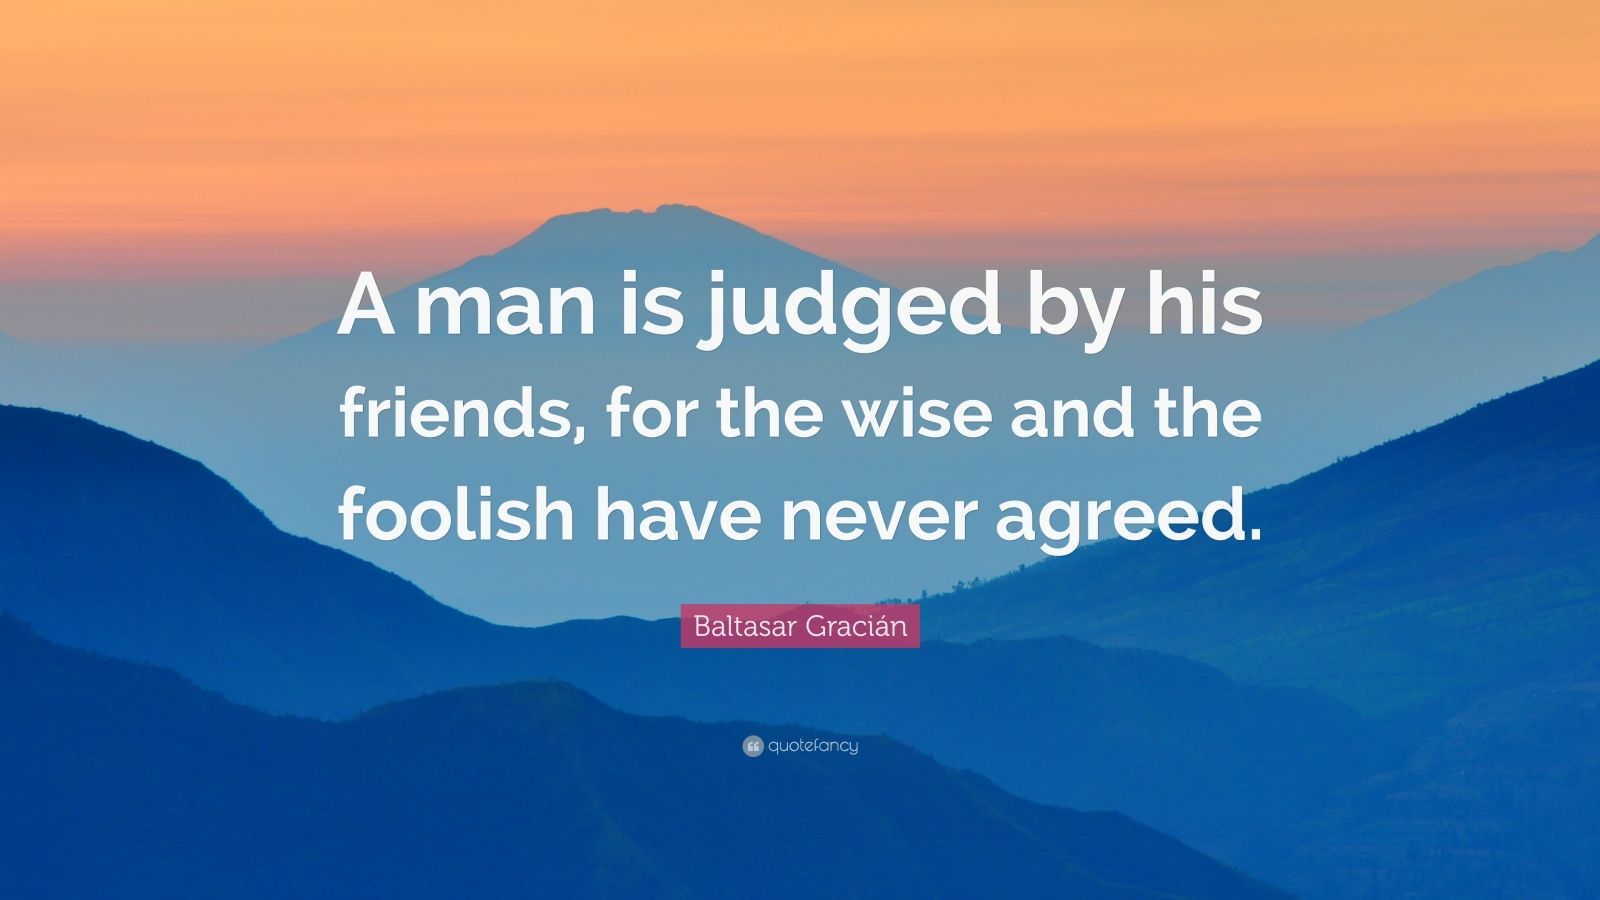 """Baltasar Gracián Quote: """"A man is judged by his friends, for the wise and the foolish have never agreed."""""""